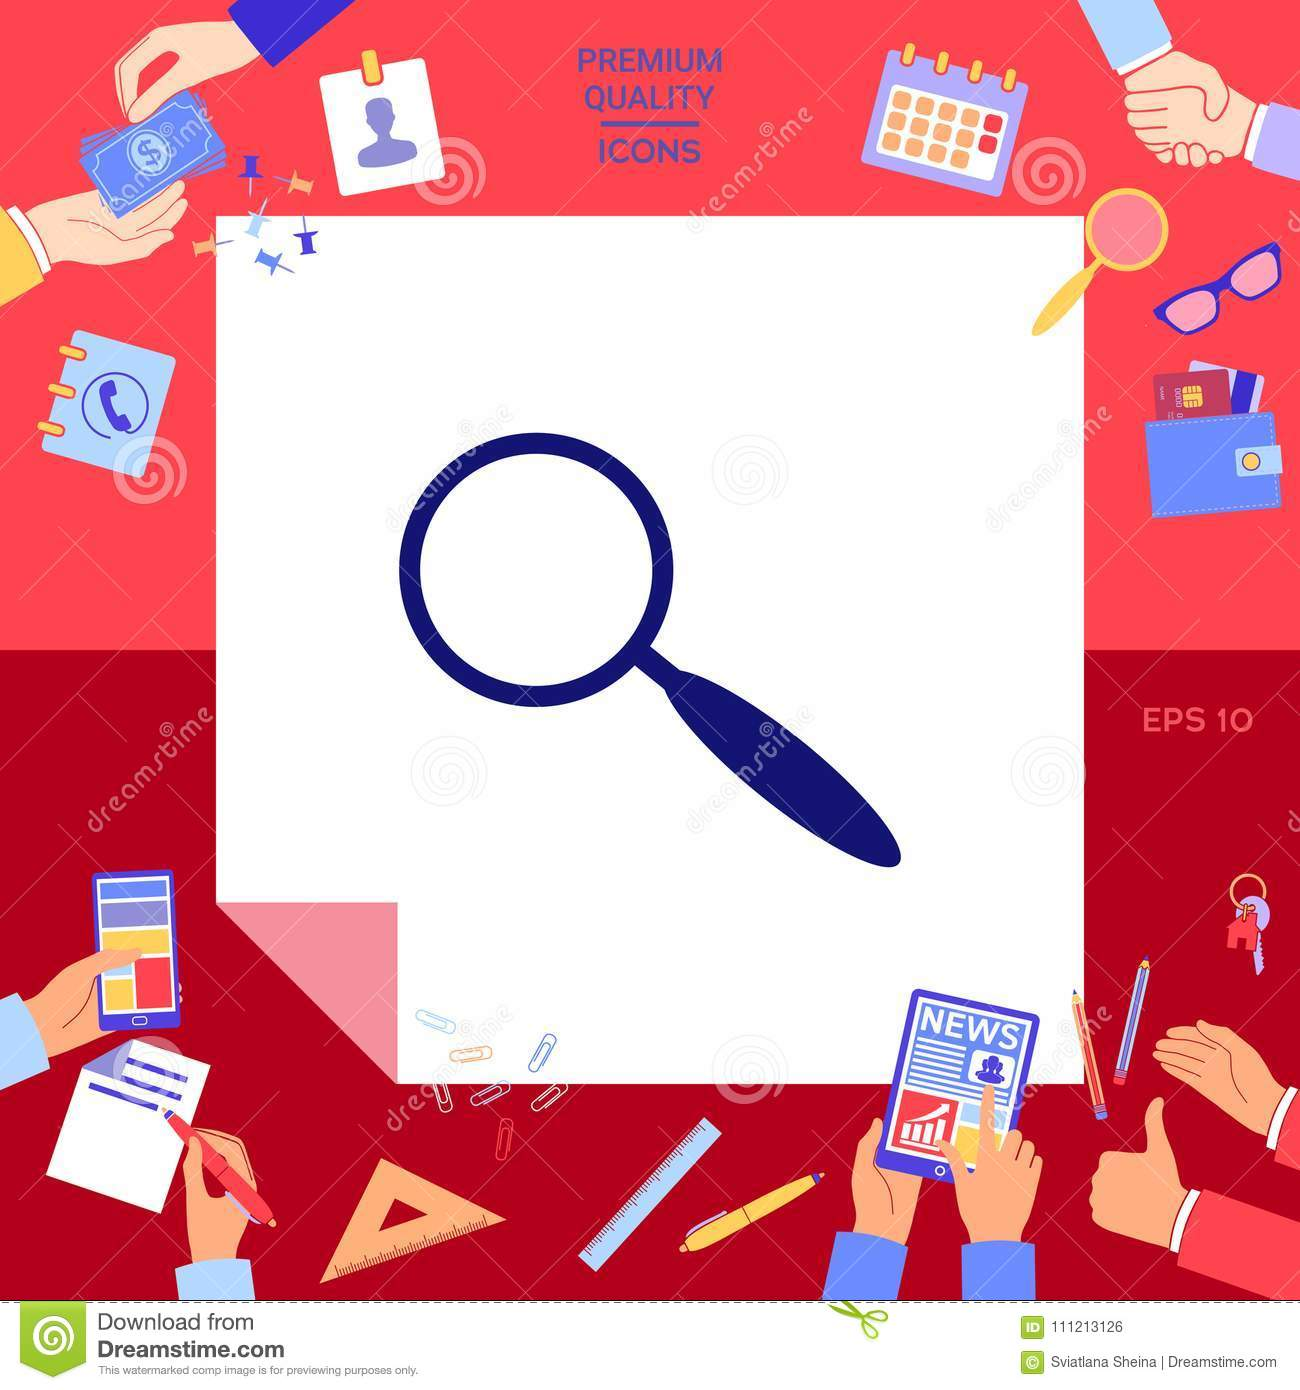 Search Symbol Icon Stock Vector Illustration Of Background 111213126